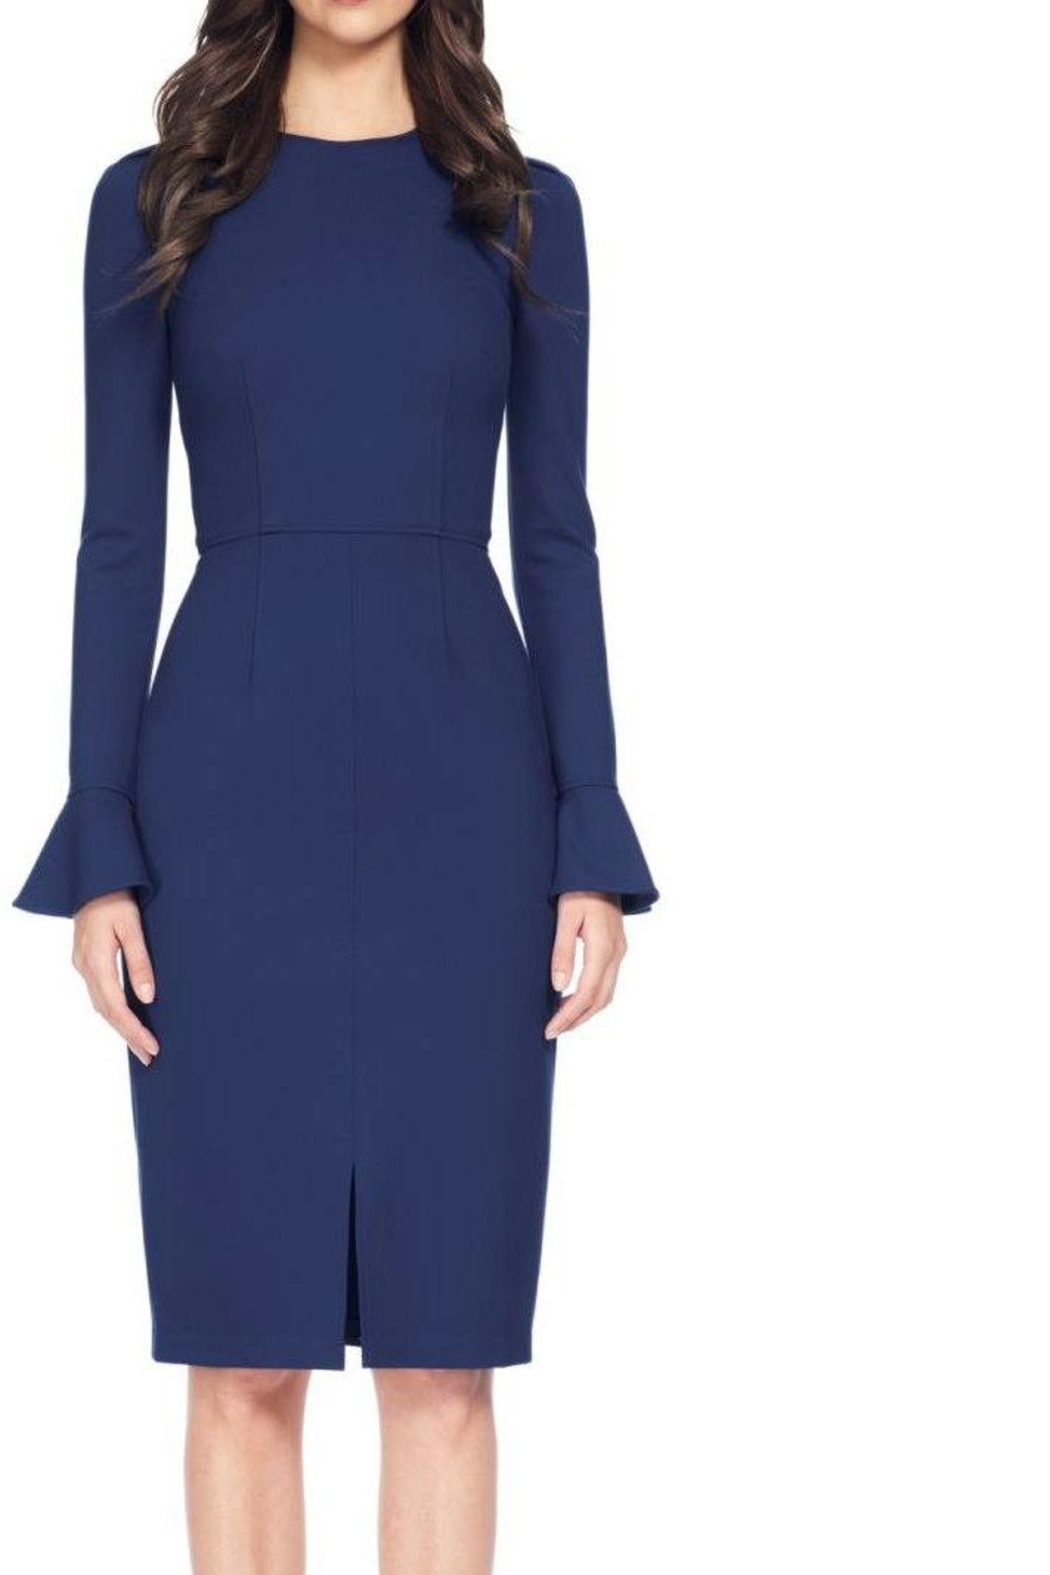 David Meister Long Sleeve Dress - Main Image